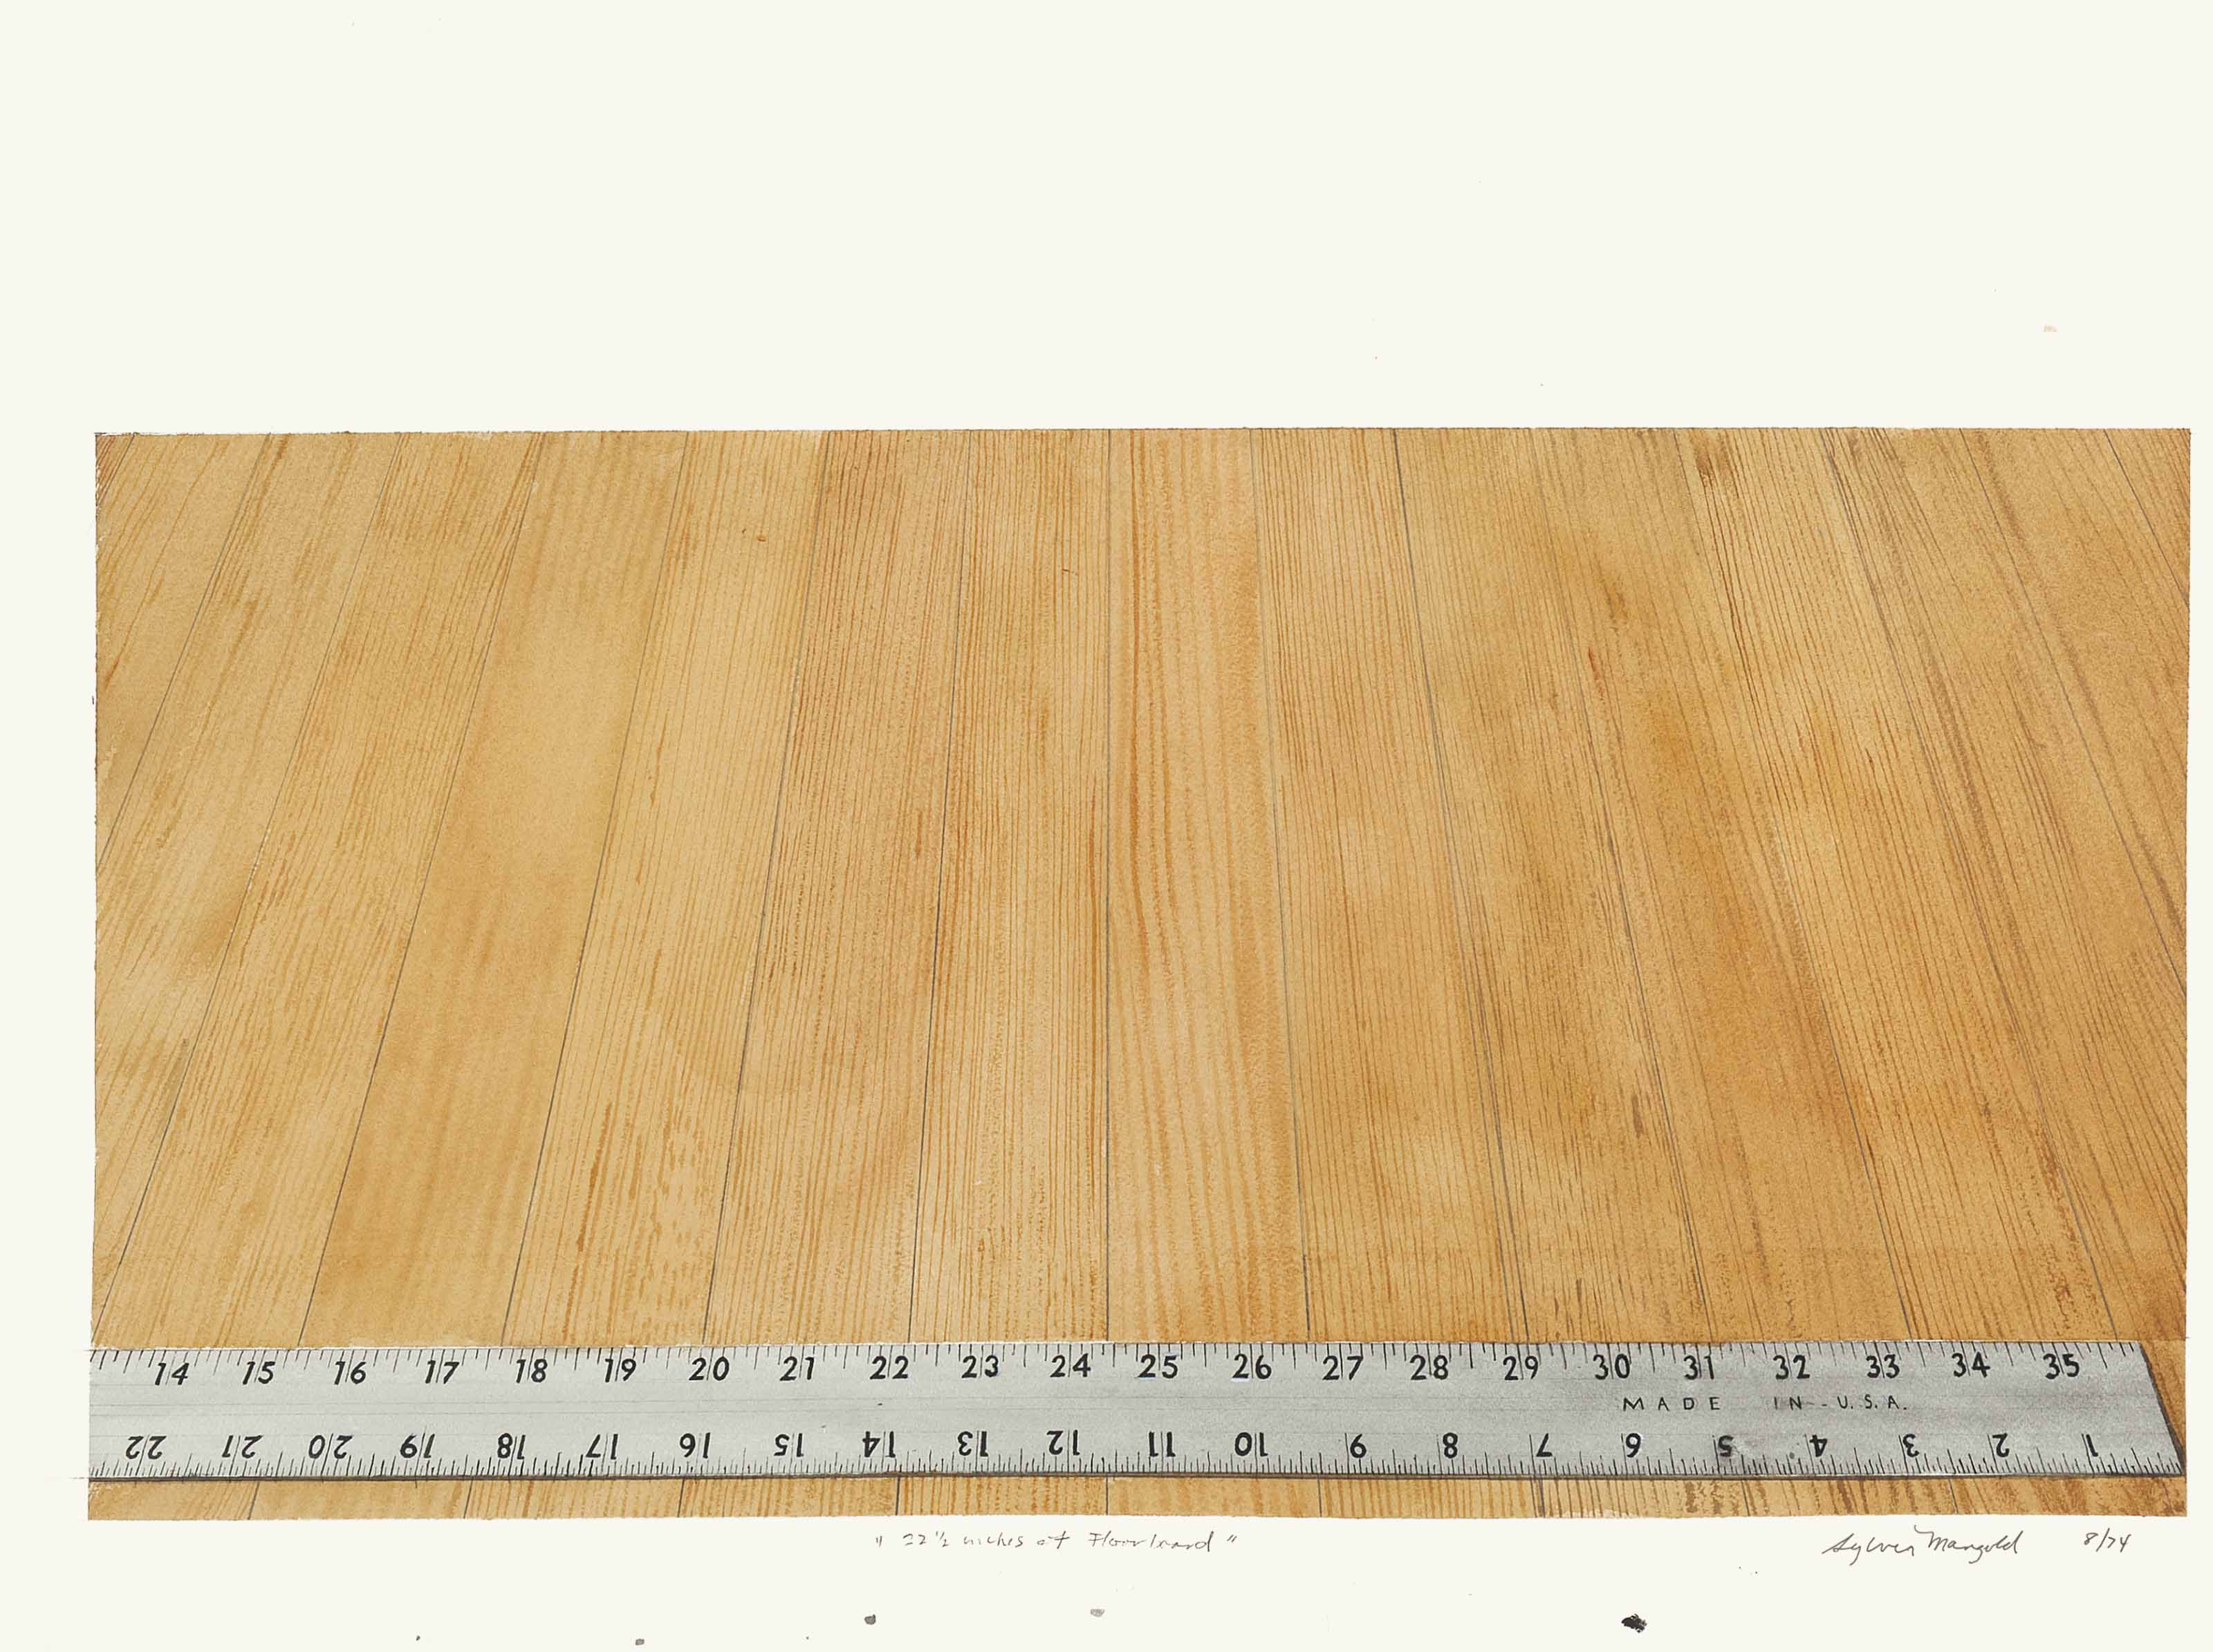 22 1/2 inches of Floorboard